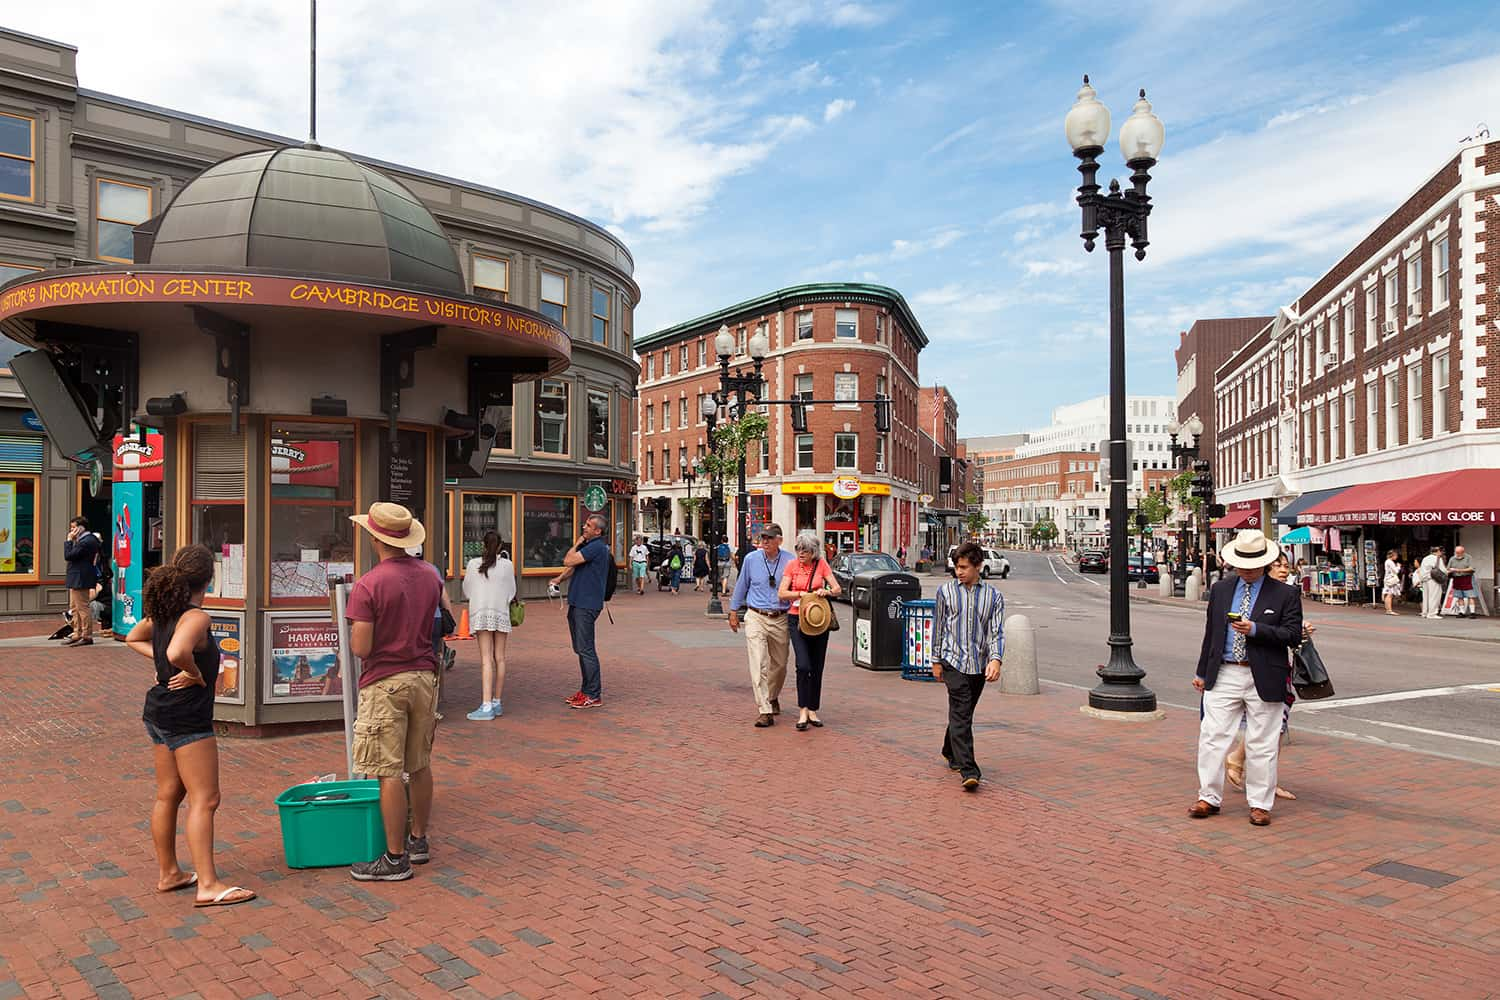 People walk around Harvard Square on a sunny day in Cambridge, MA.